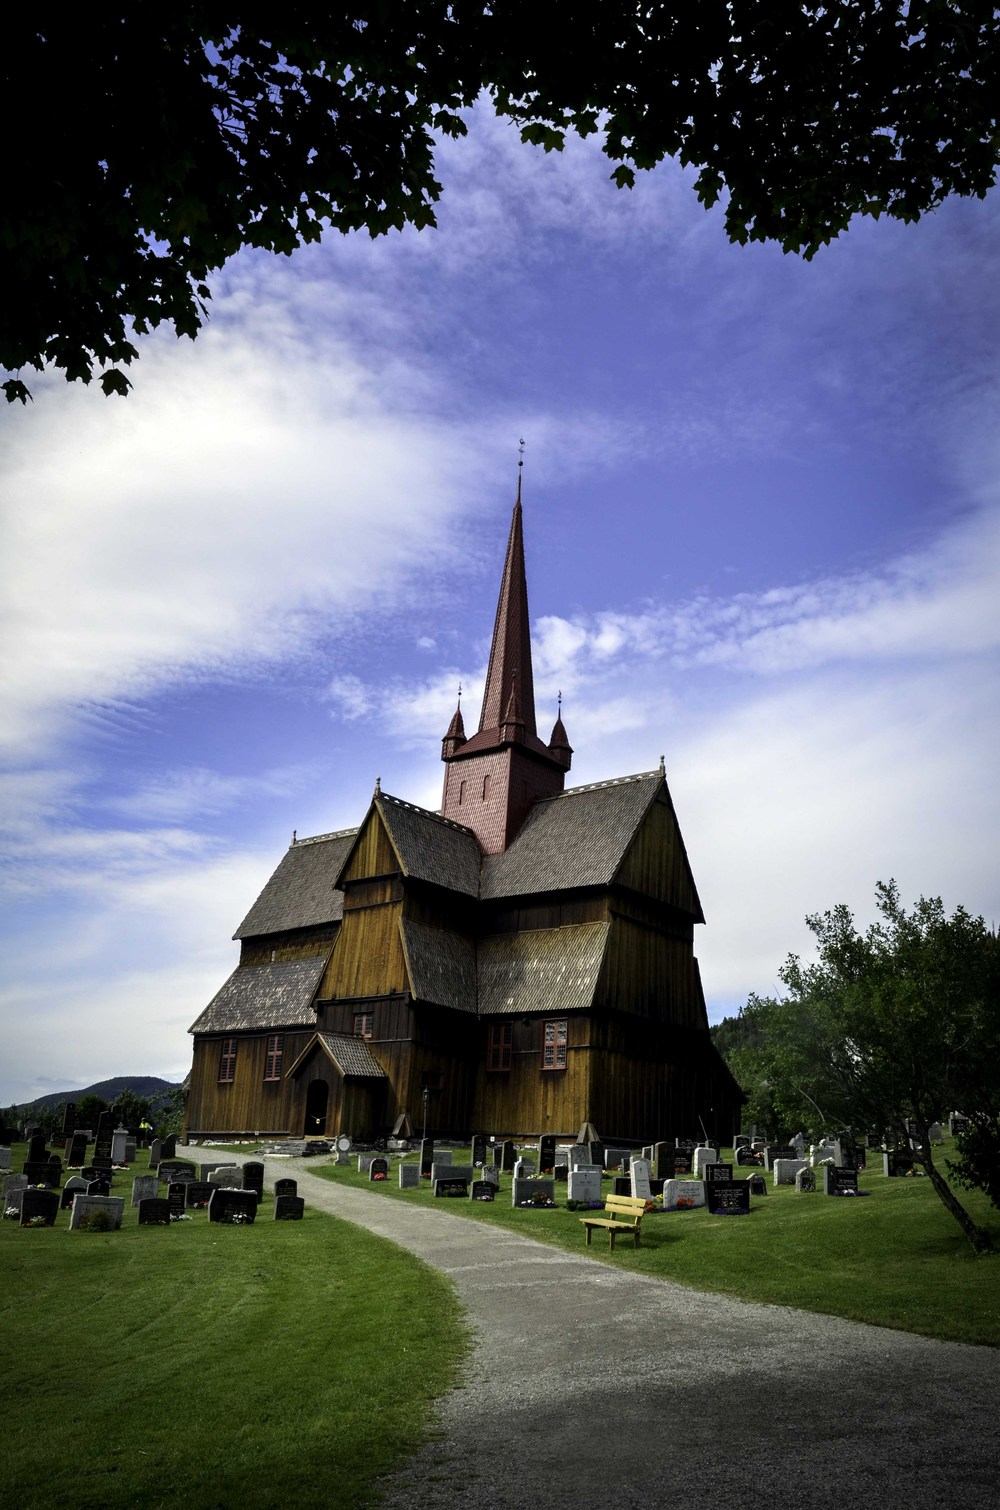 Ringebu stave church, July 2015